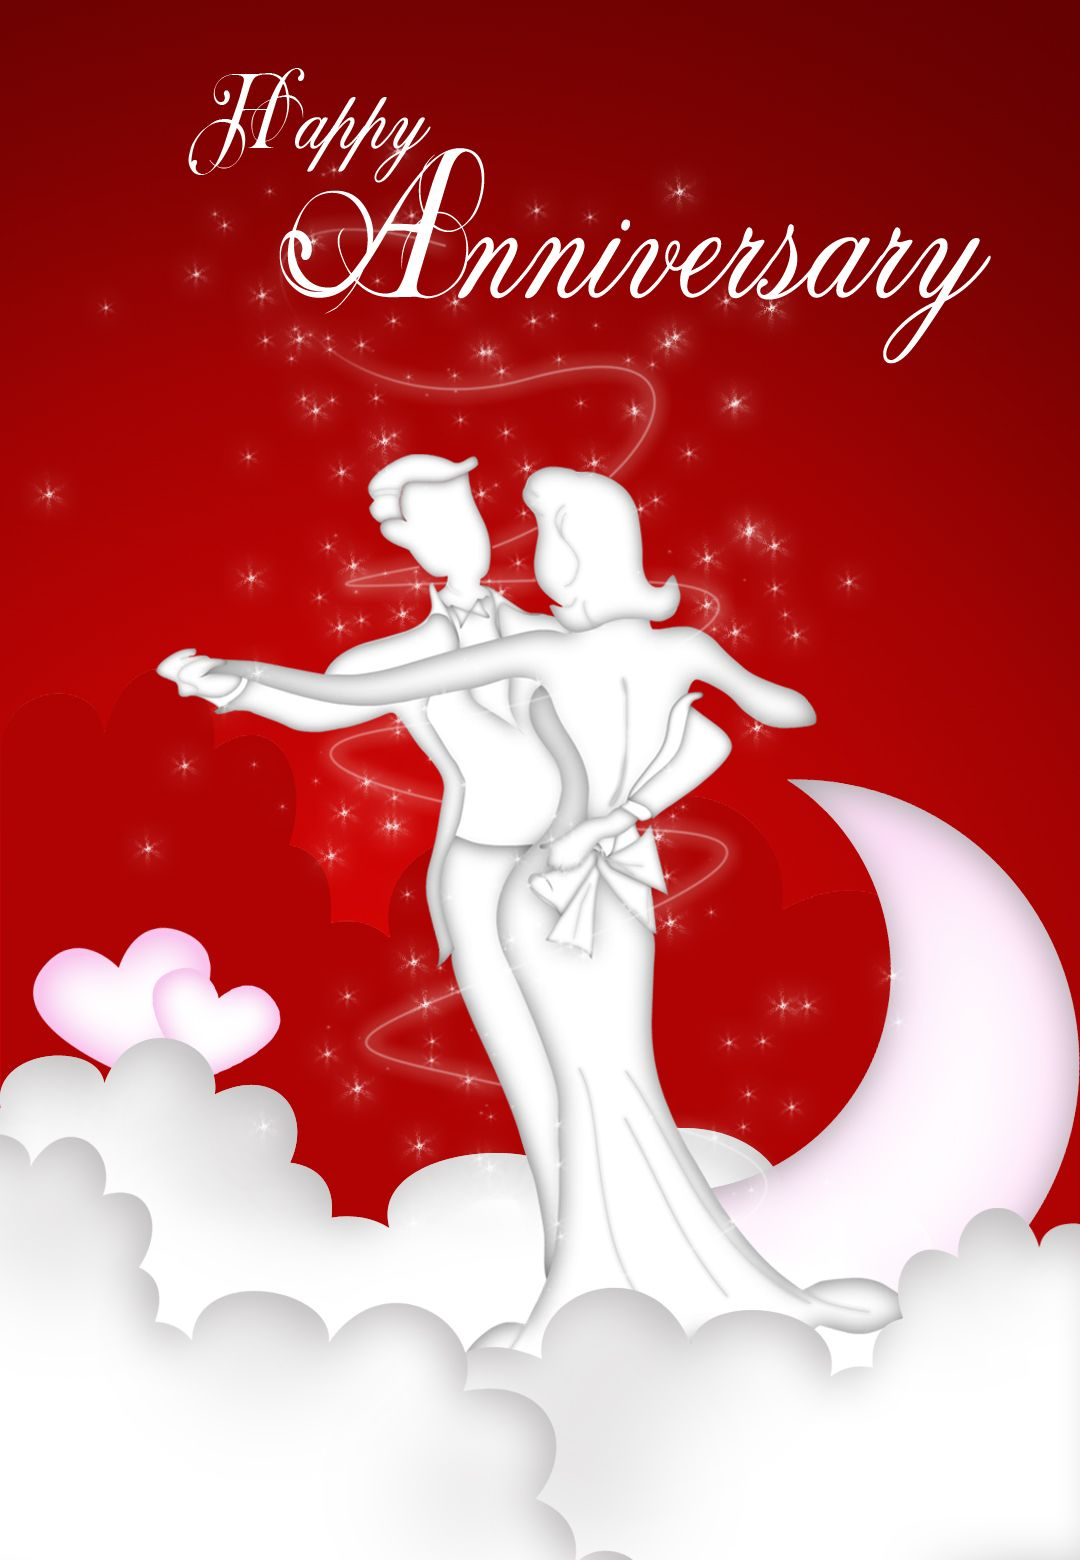 happy anniversary cards Cards Pinterest – Printable Anniversary Cards for Her